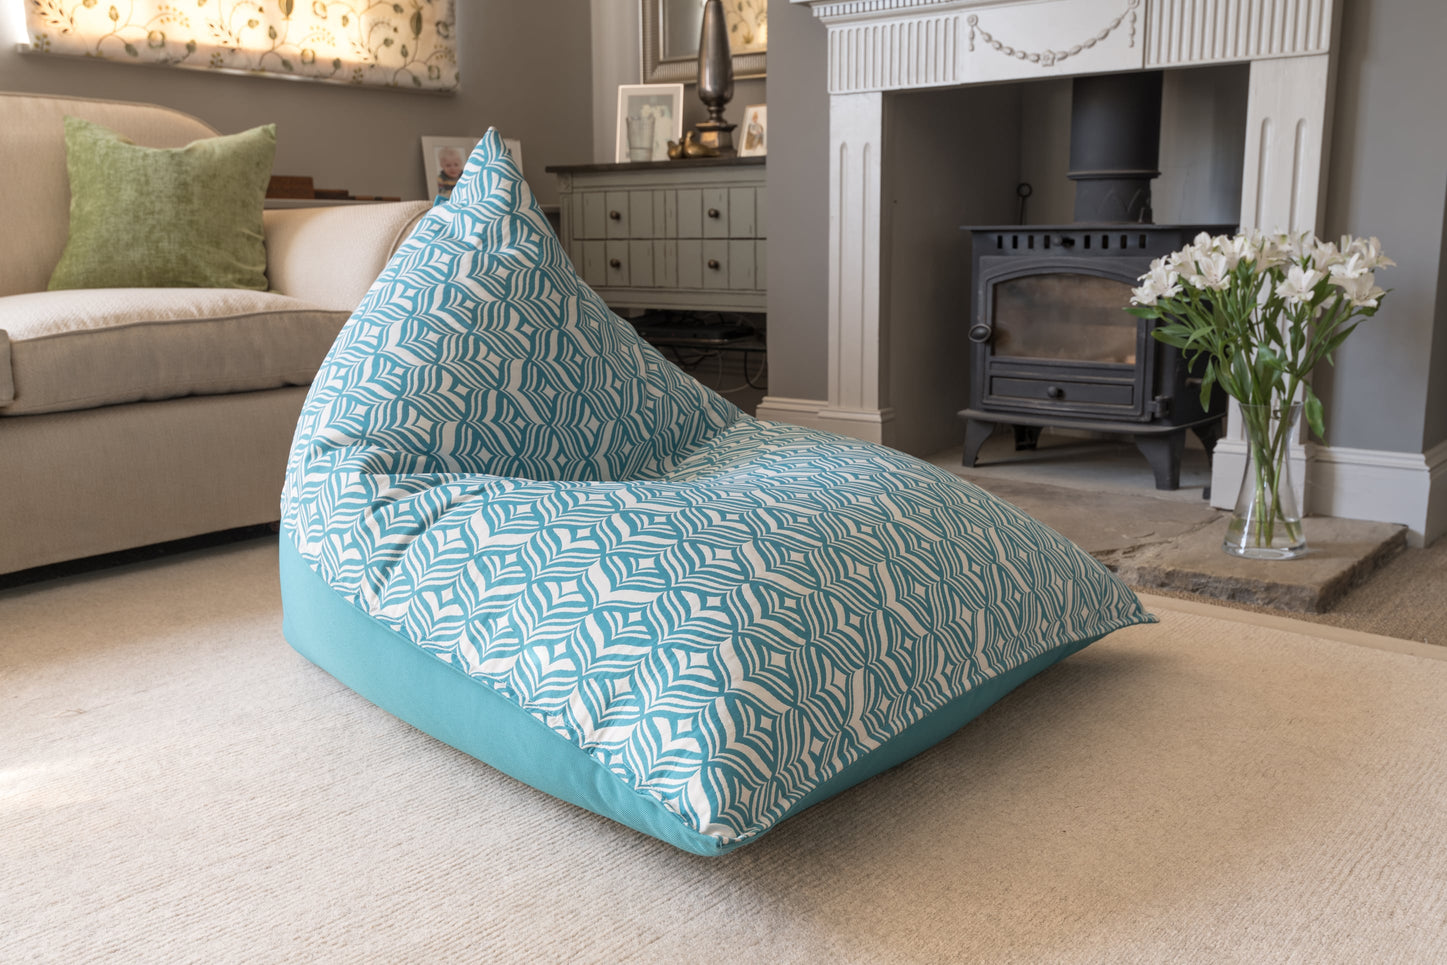 Armadillo Sun bean bag chair in turquoise blue and white tulip pattern indoors